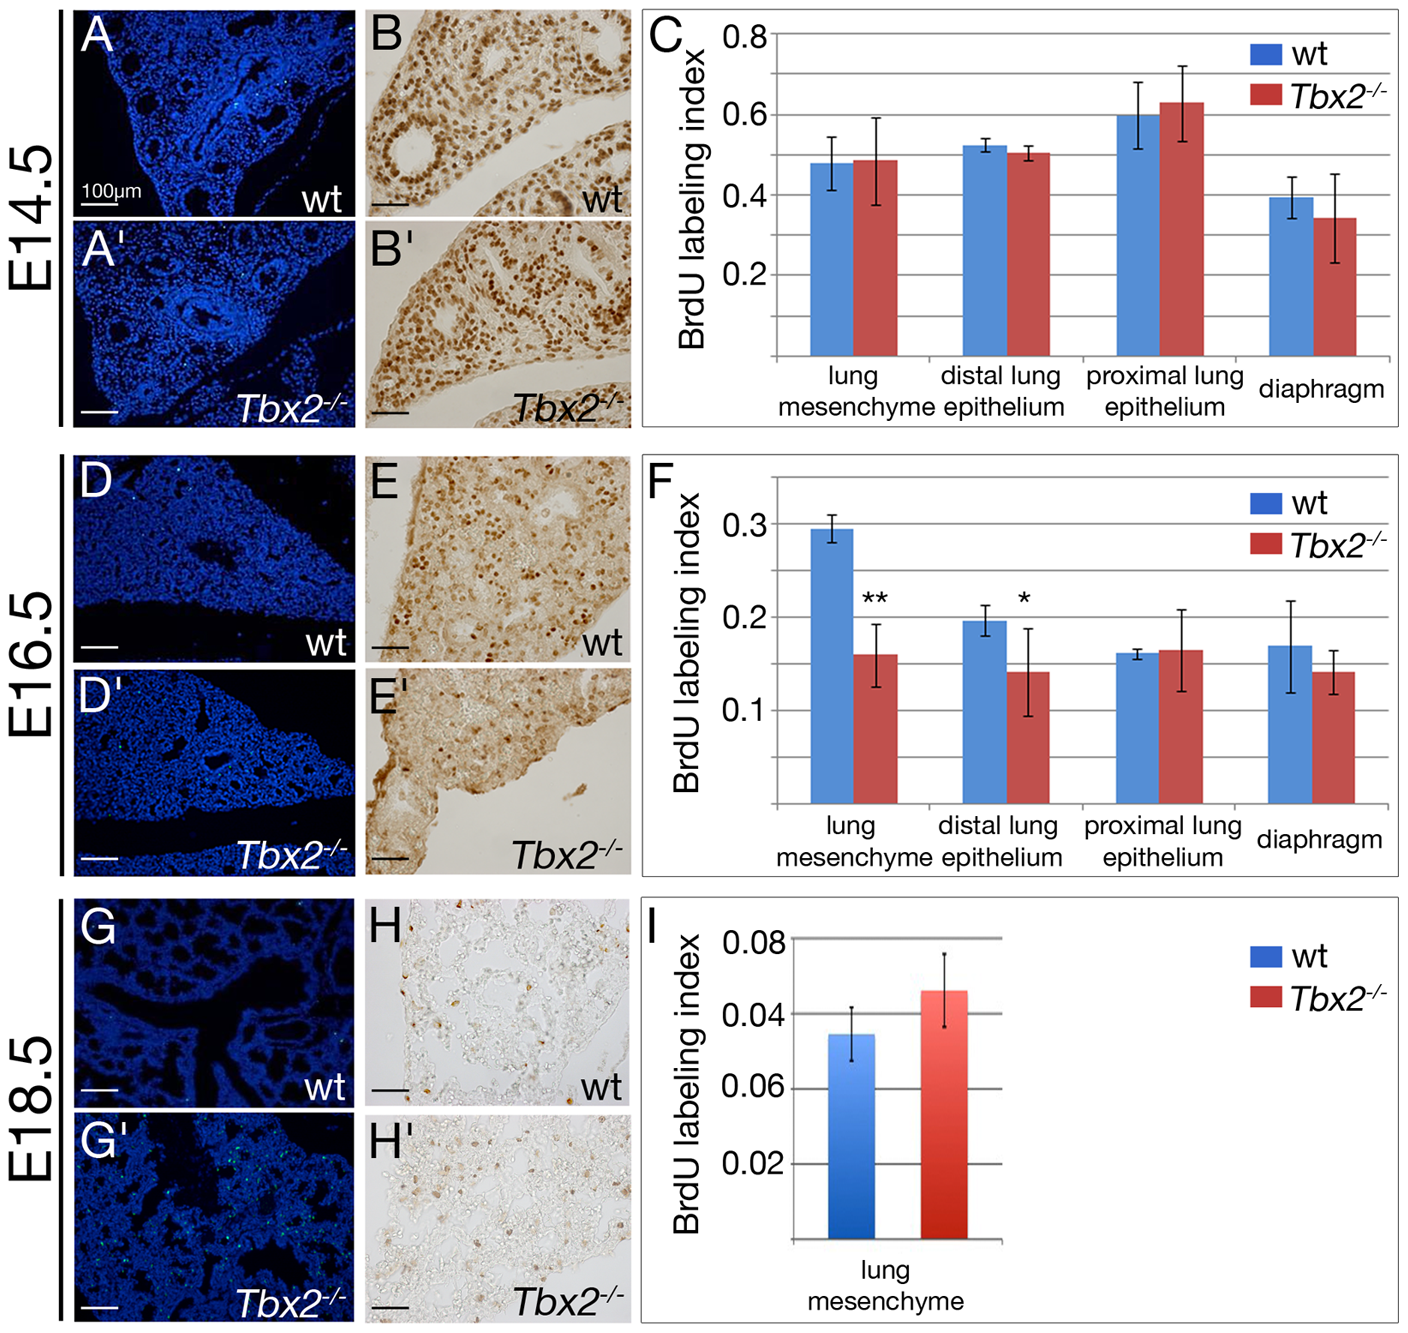 Decreased proliferation and increased apoptosis contribute to hypoplasia of <i>Tbx2</i>-deficient lungs.